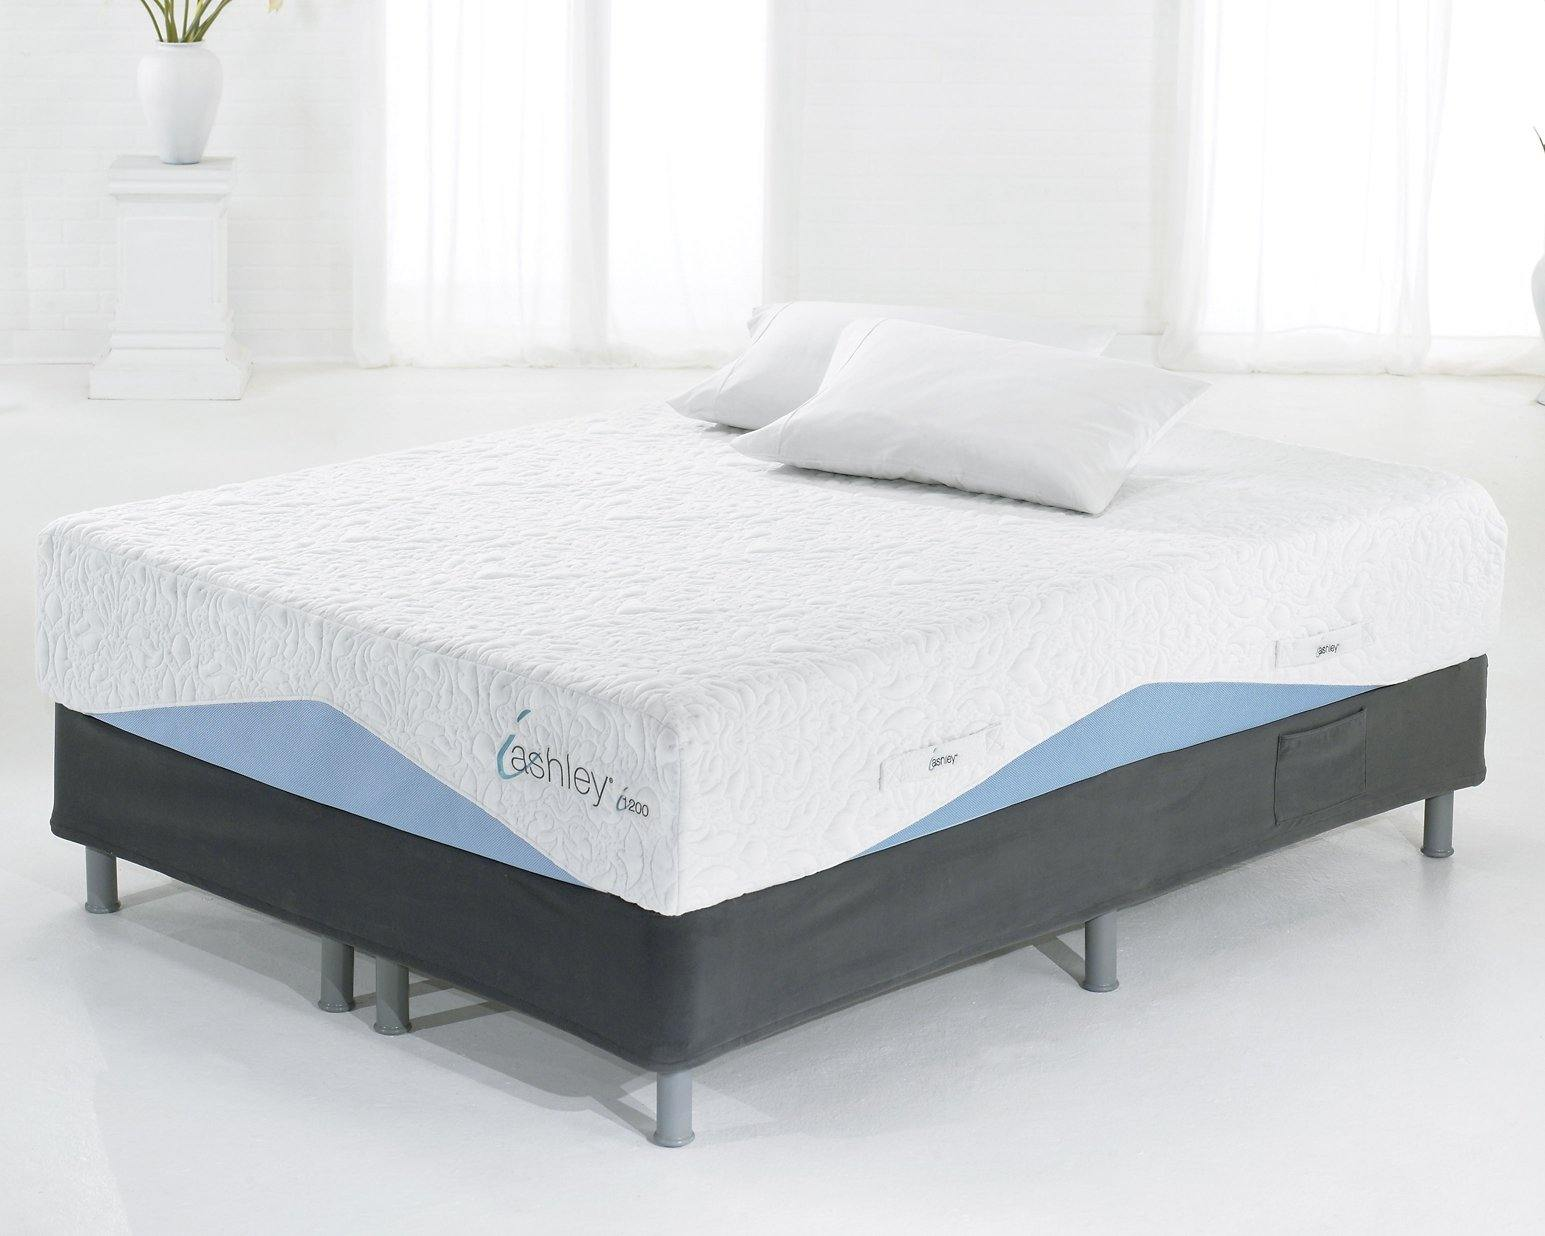 12 Inch Chime Elite AMP002465 foam master mattress By ashley - sofafair.com